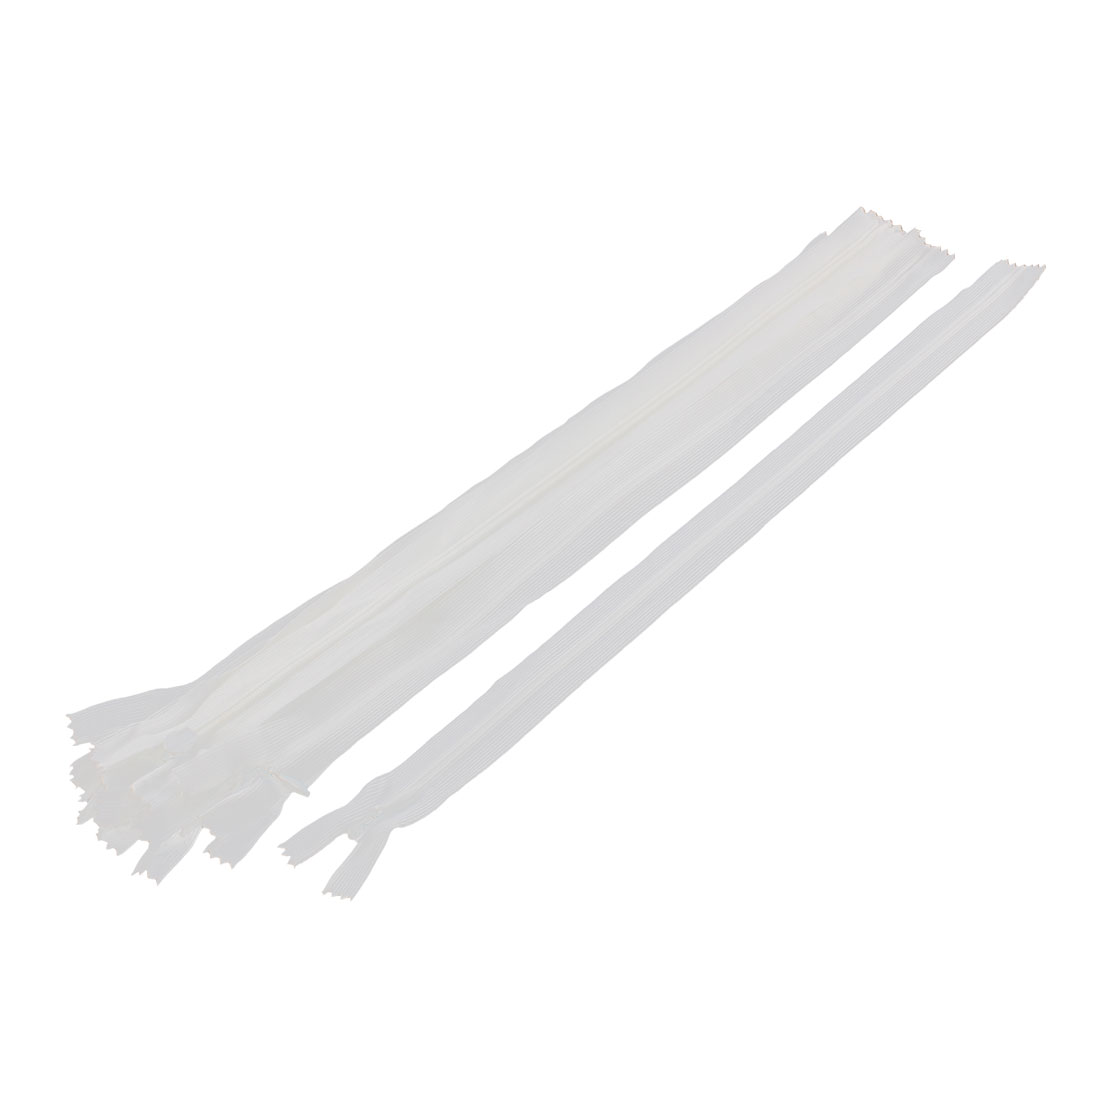 White Invisible Nylon Concealed Zip Zipper 14-inch 10 Pcs